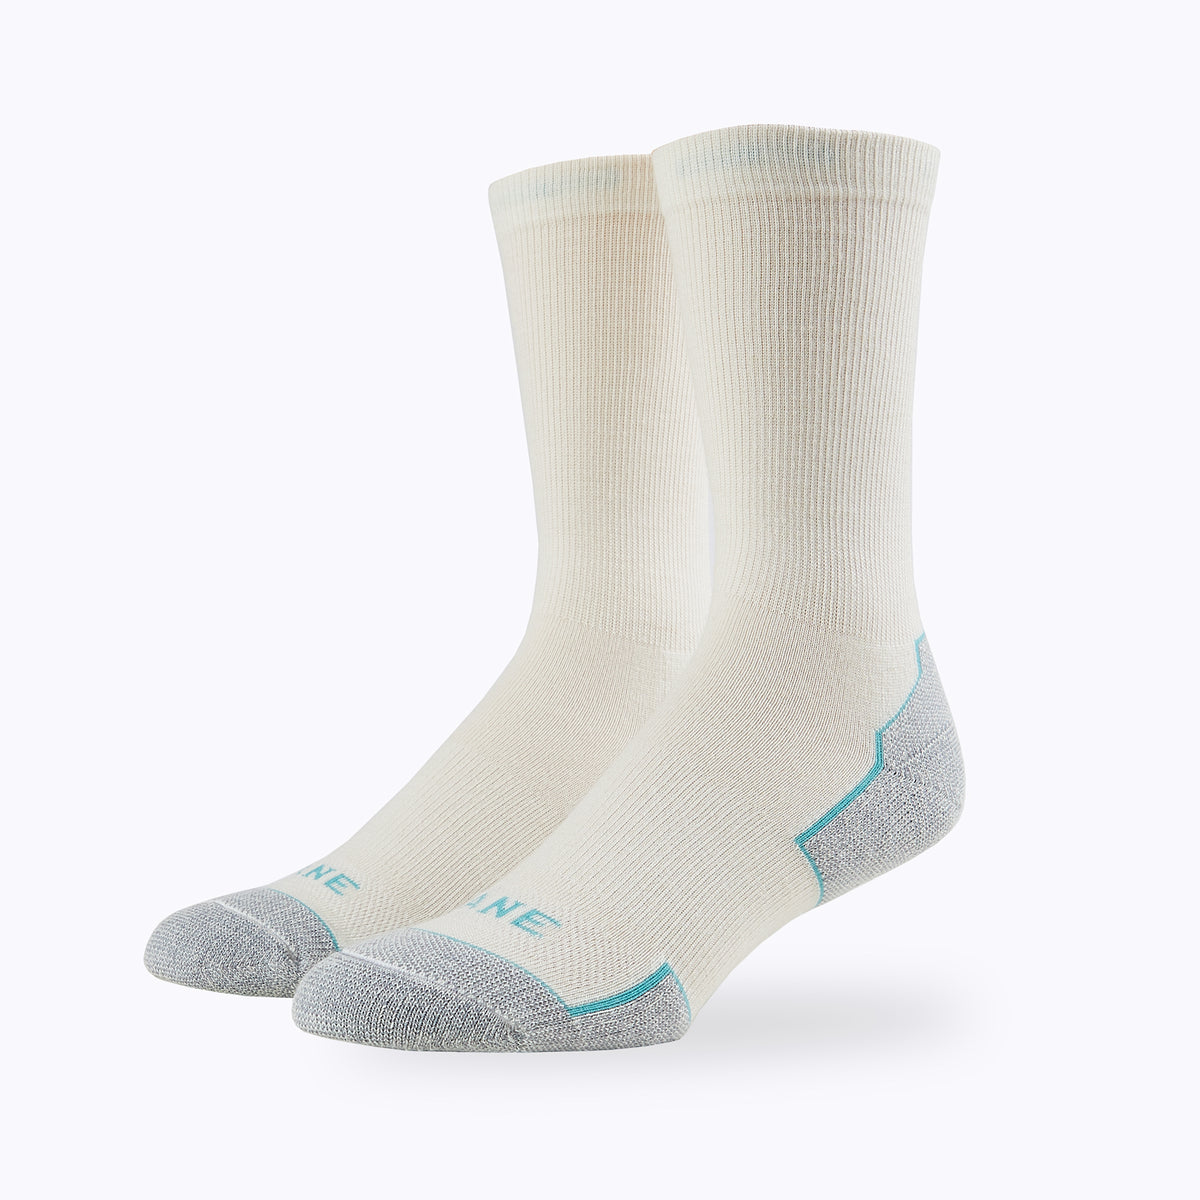 Everyday 3 Pack Mix Women's Mid-Calf Socks -  by Canyon x Lane Socks